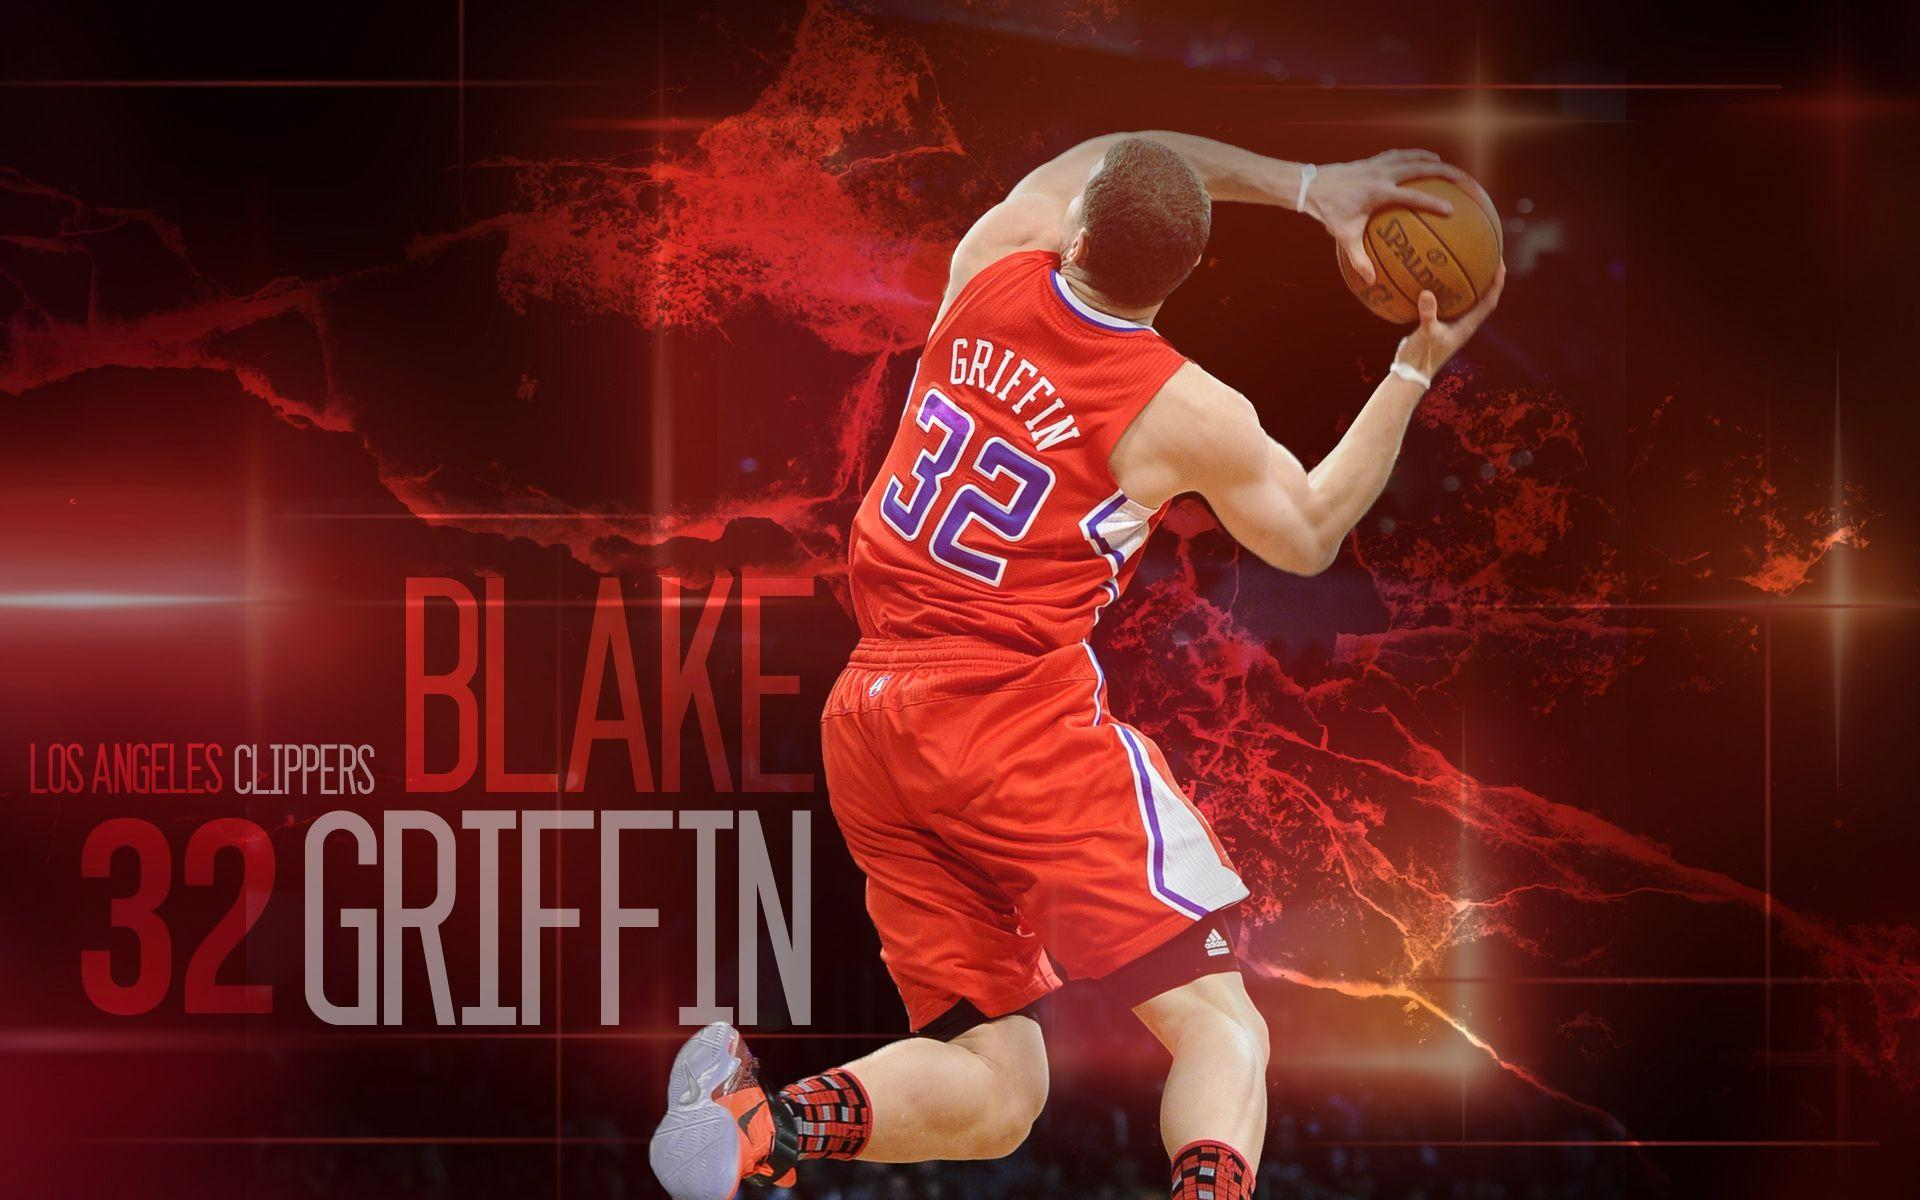 HD Blake Griffin Losangeles Clippers Wallpapers